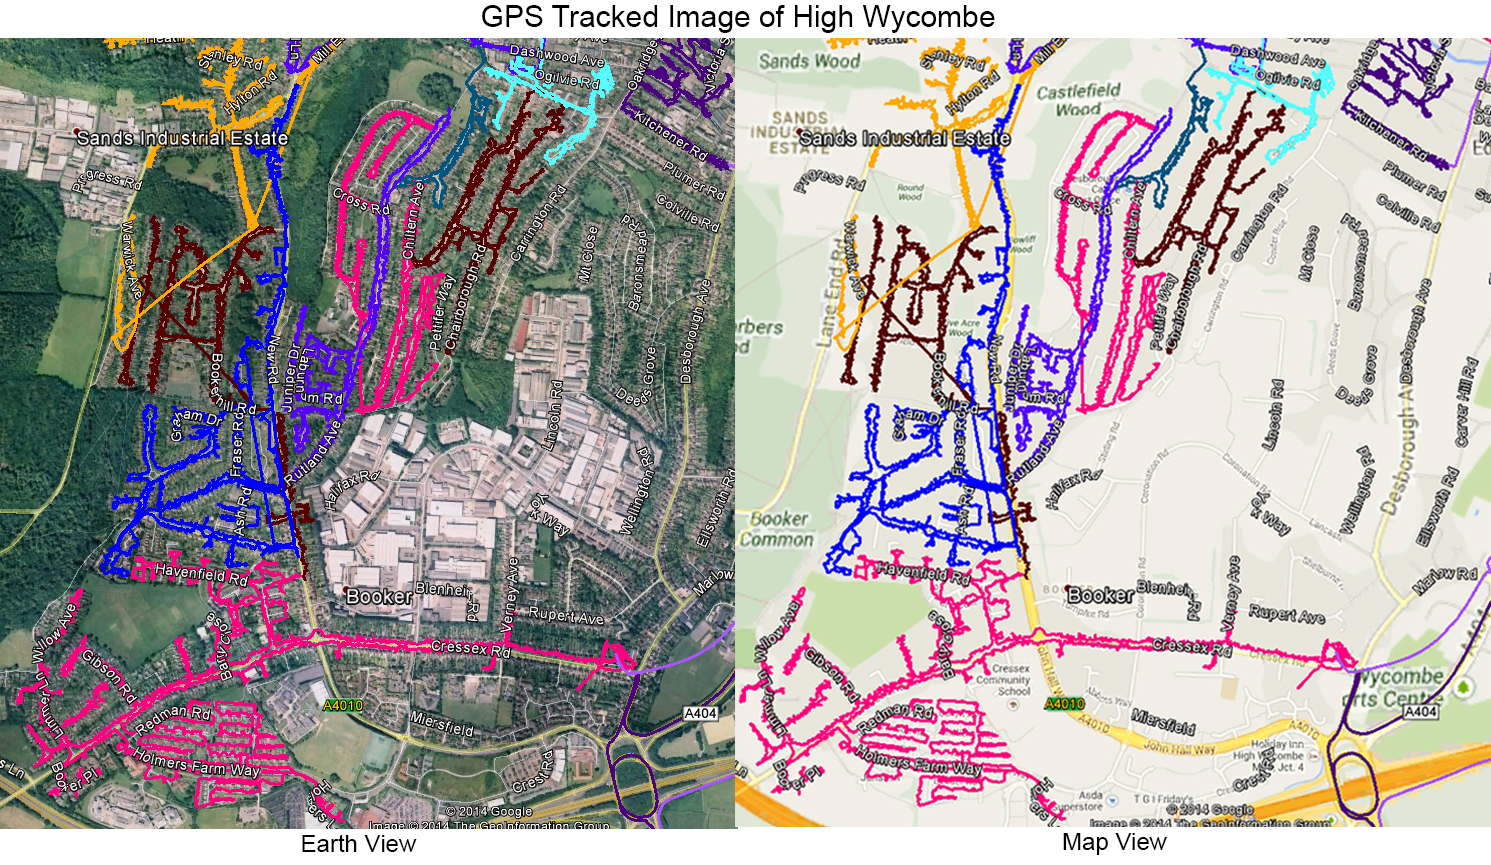 Leaflet Distribution High Wycombe - GPS Tracked